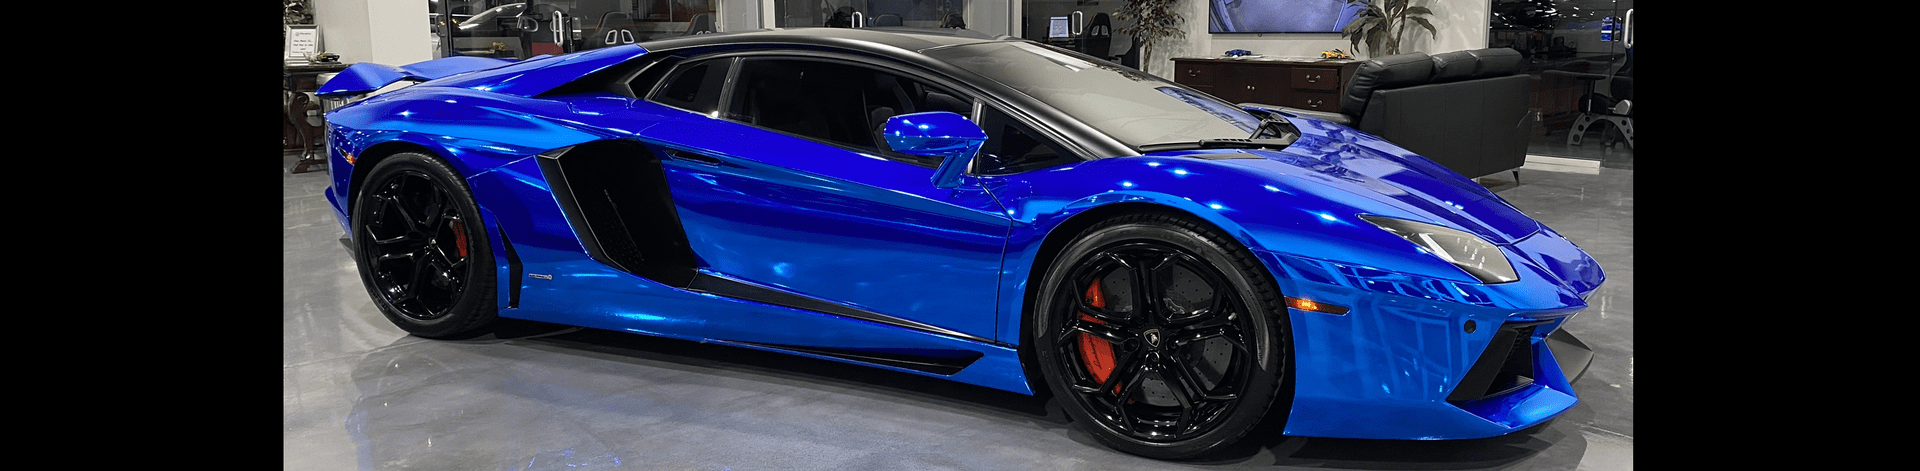 Chrome Blue Aventador